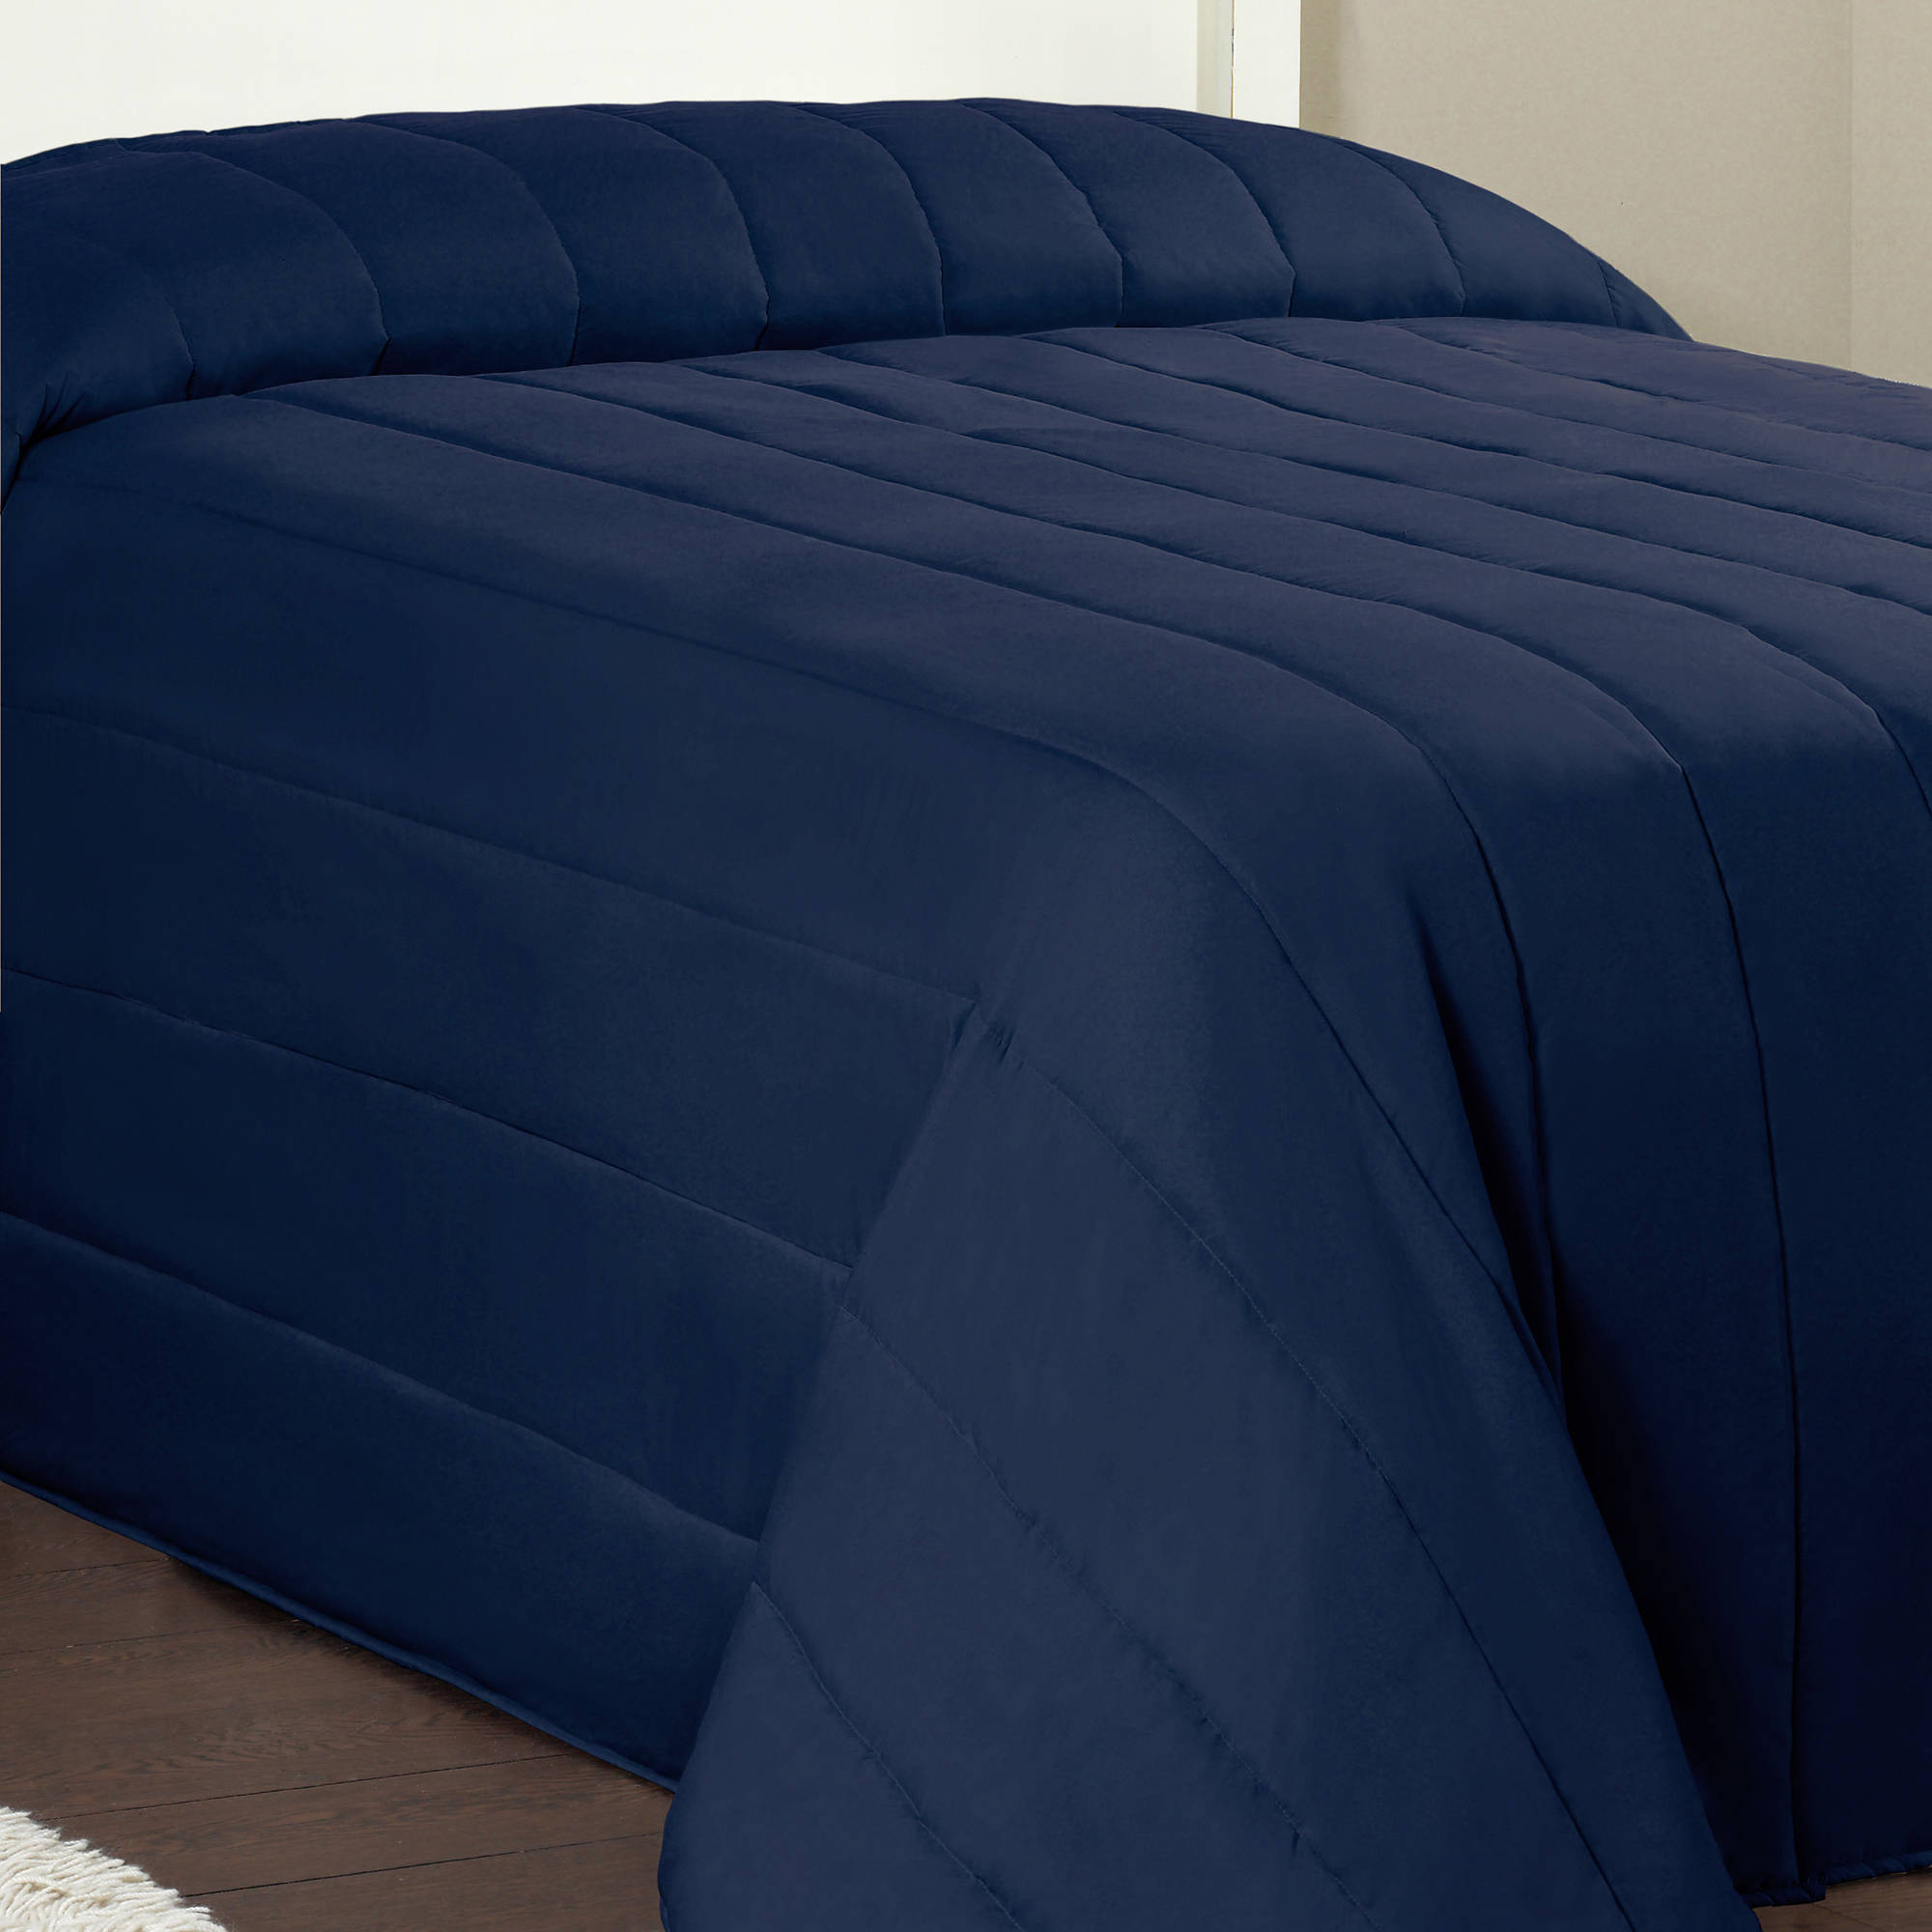 Mainstays Solid Channel Quilted Bedspread Collection   Walmart.com